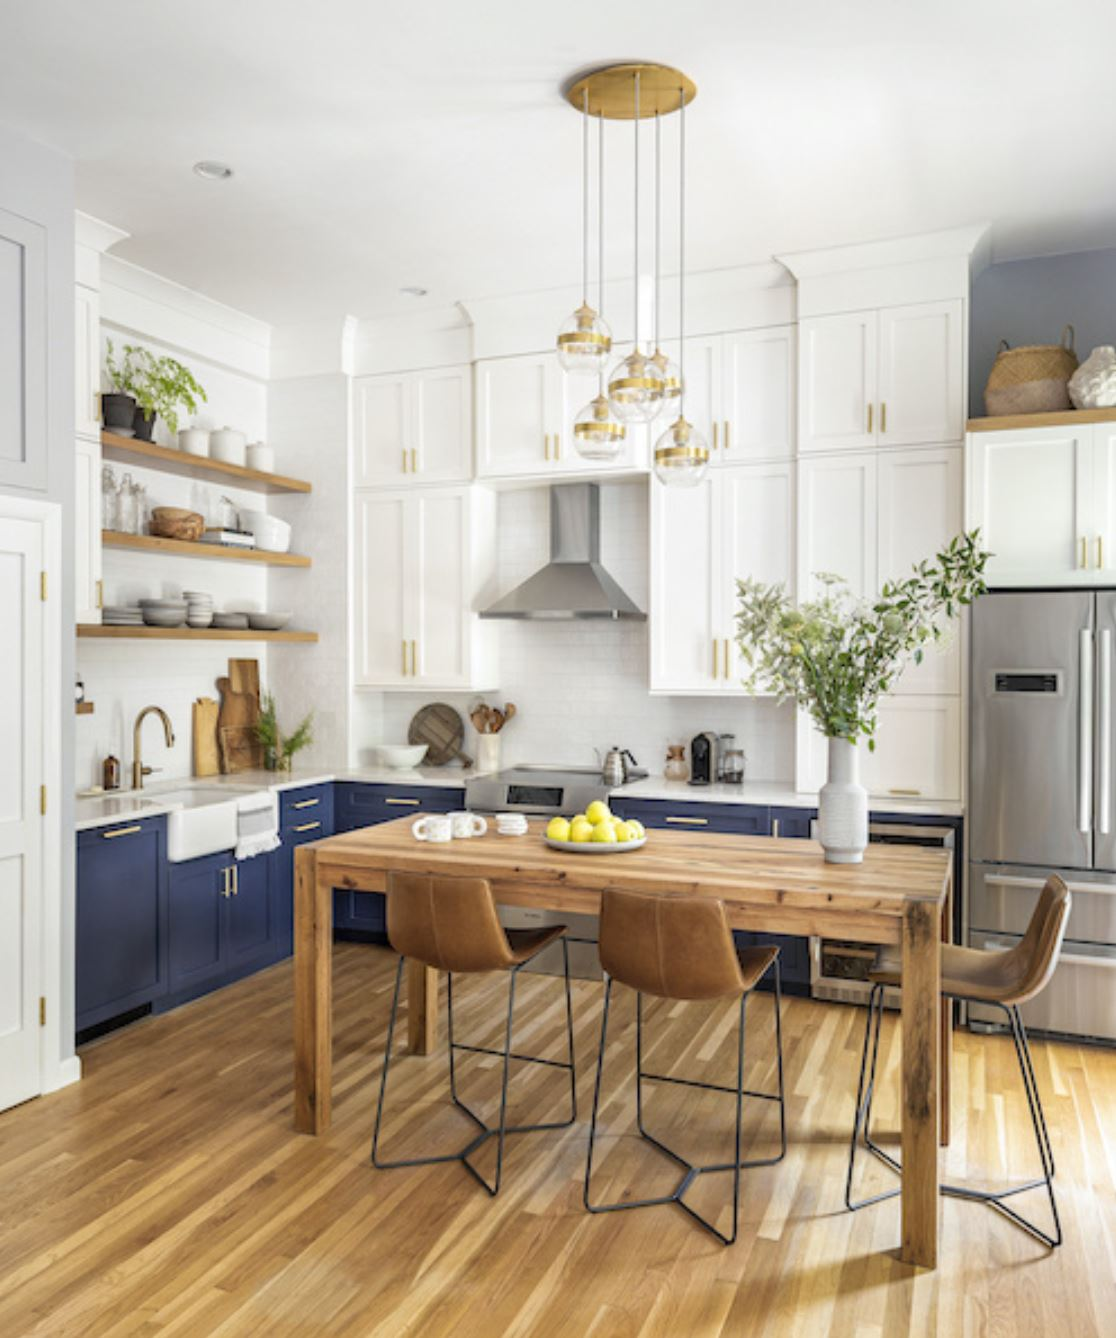 Realtor Magazine 2021 03 15 Ten Kitchen Changes sought out by buyers in 2021 since the begining of the plandemic after going through the COVID-19 Coronavirus pandemic Hoey Team exp Realty 11